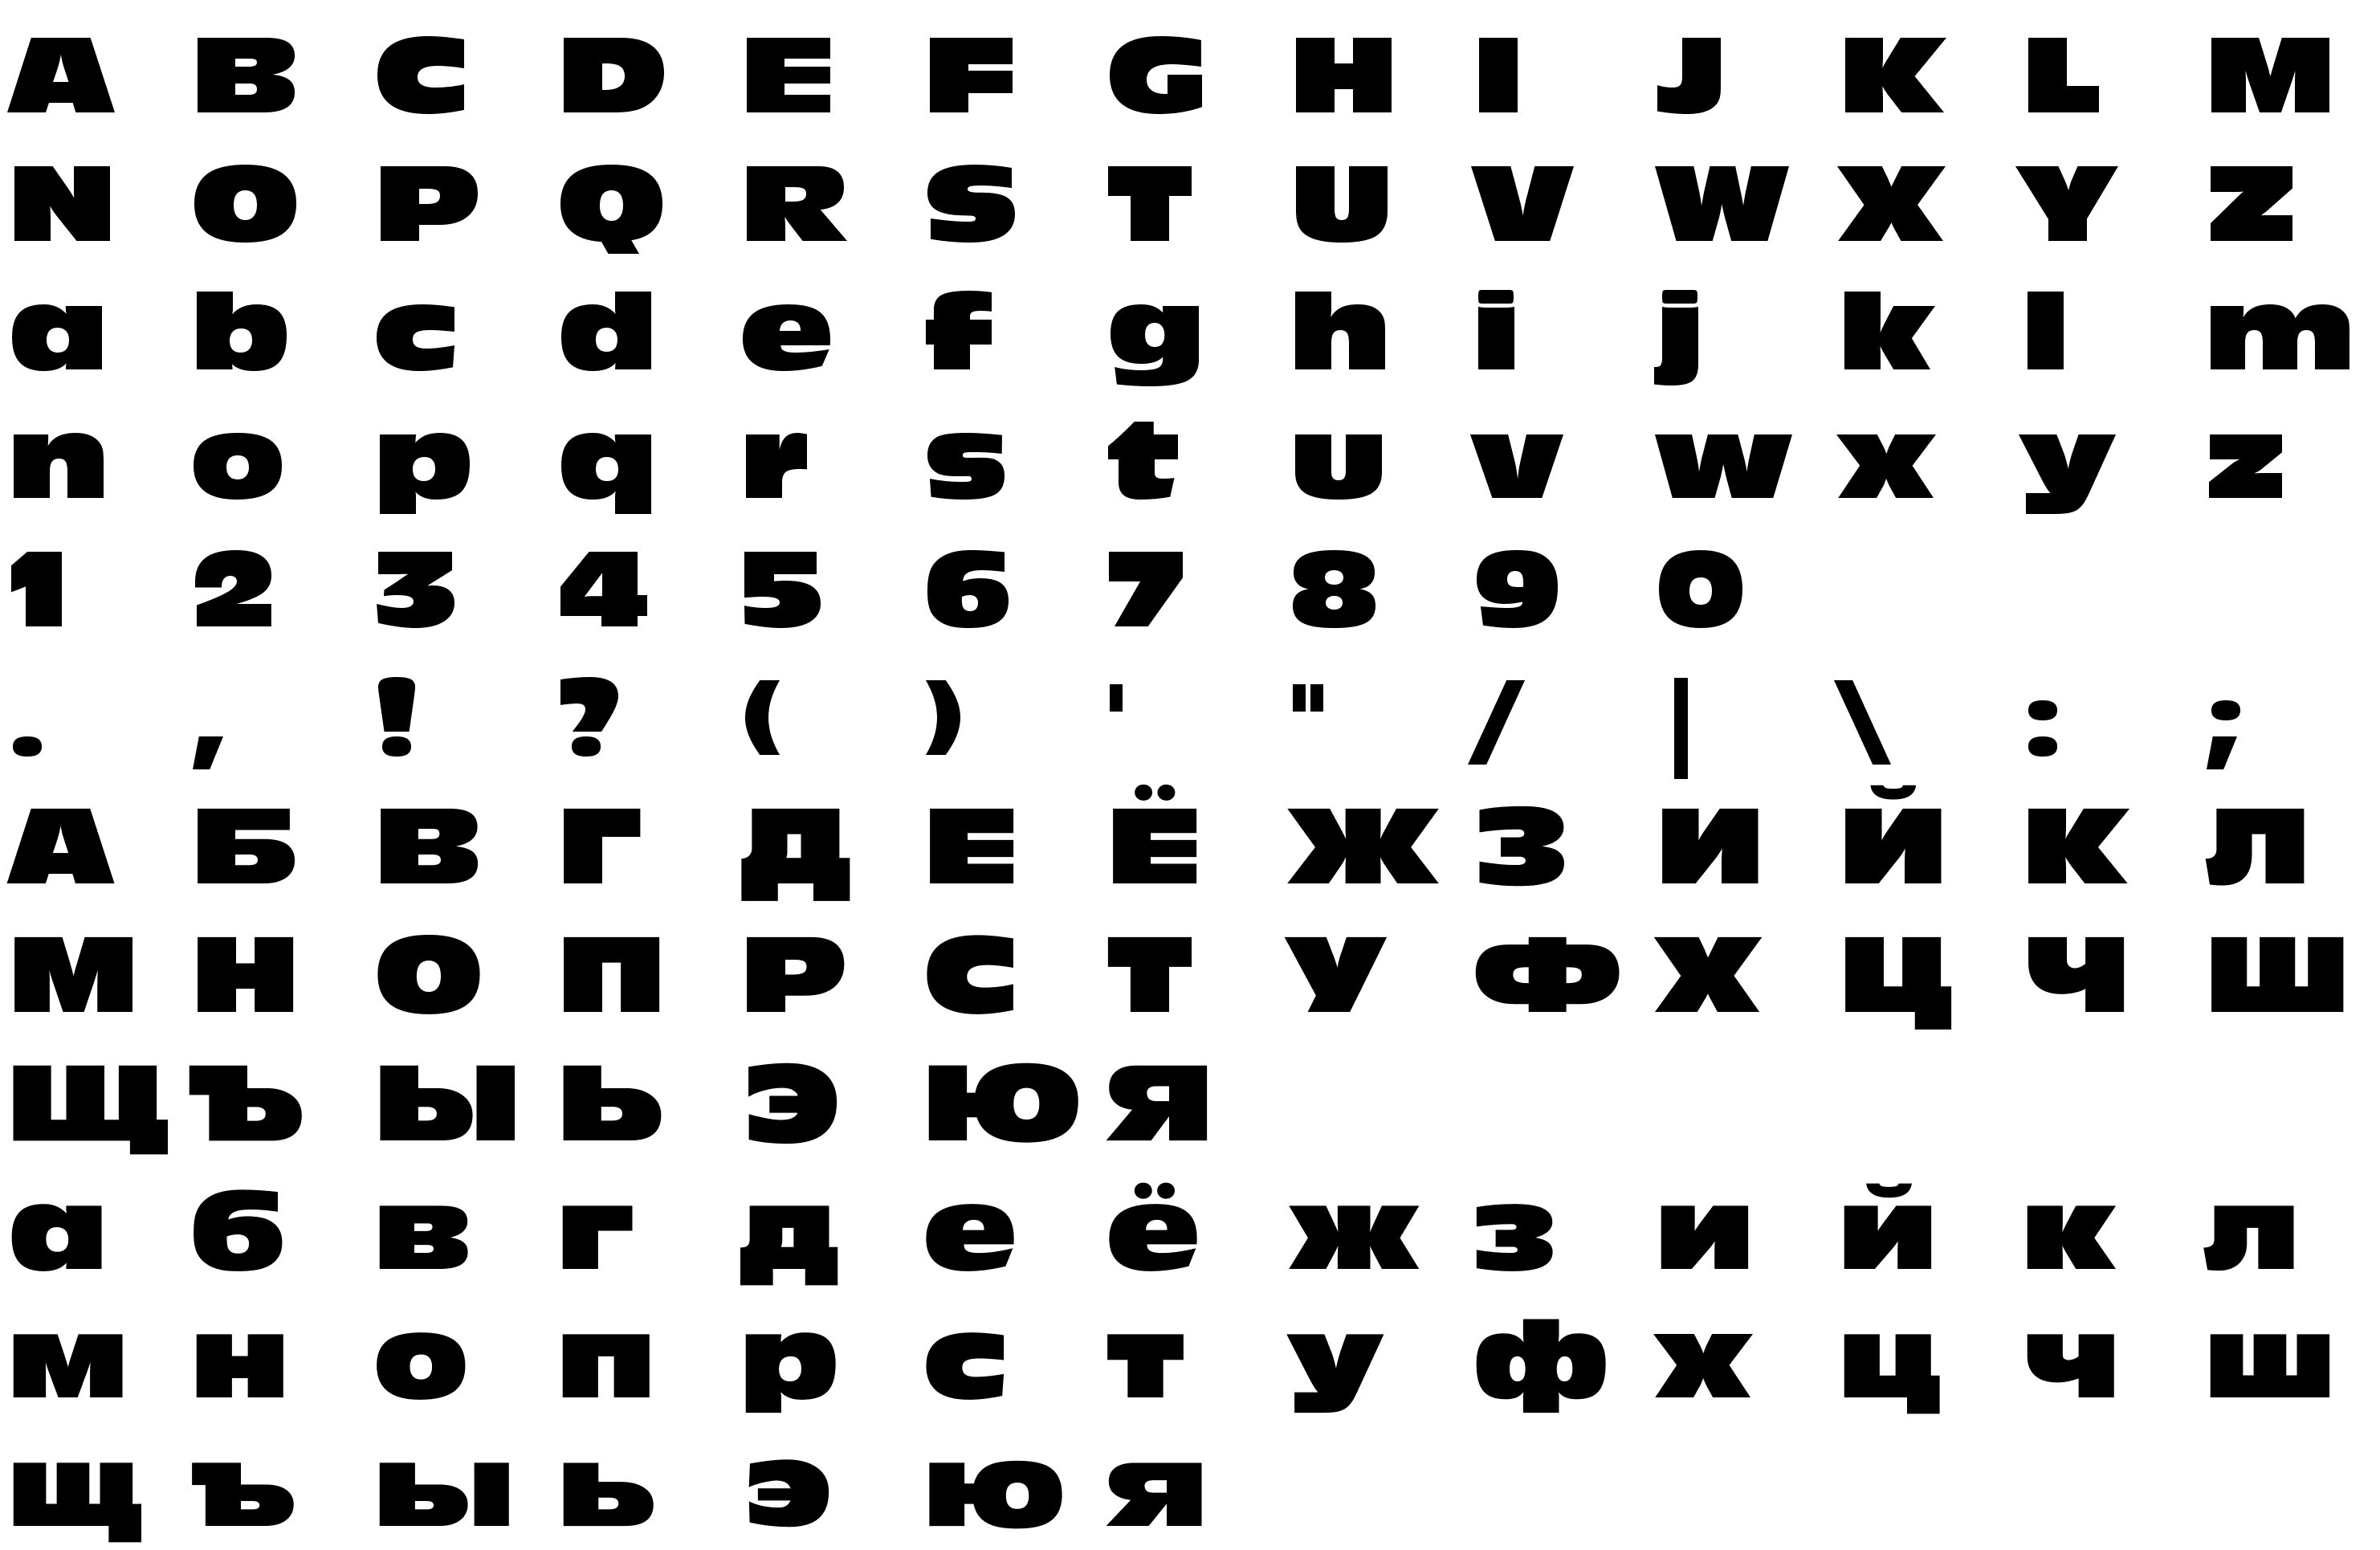 Шрифт Incised901 Nd BT [Rus by me]